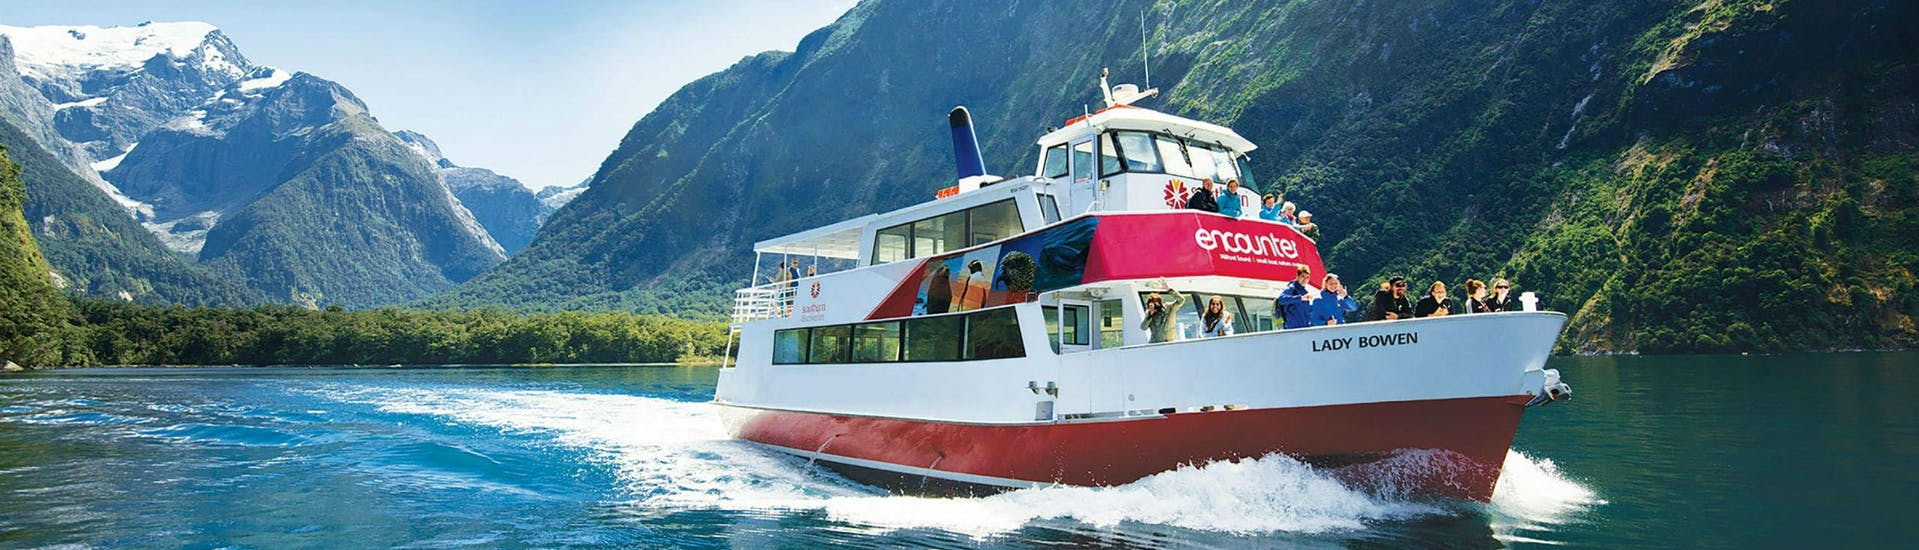 A Southern Discoveries ship is cruising along the beautiful New Zealand's most famous fjord during the Encounter Nature Cruise in Milford Sound.